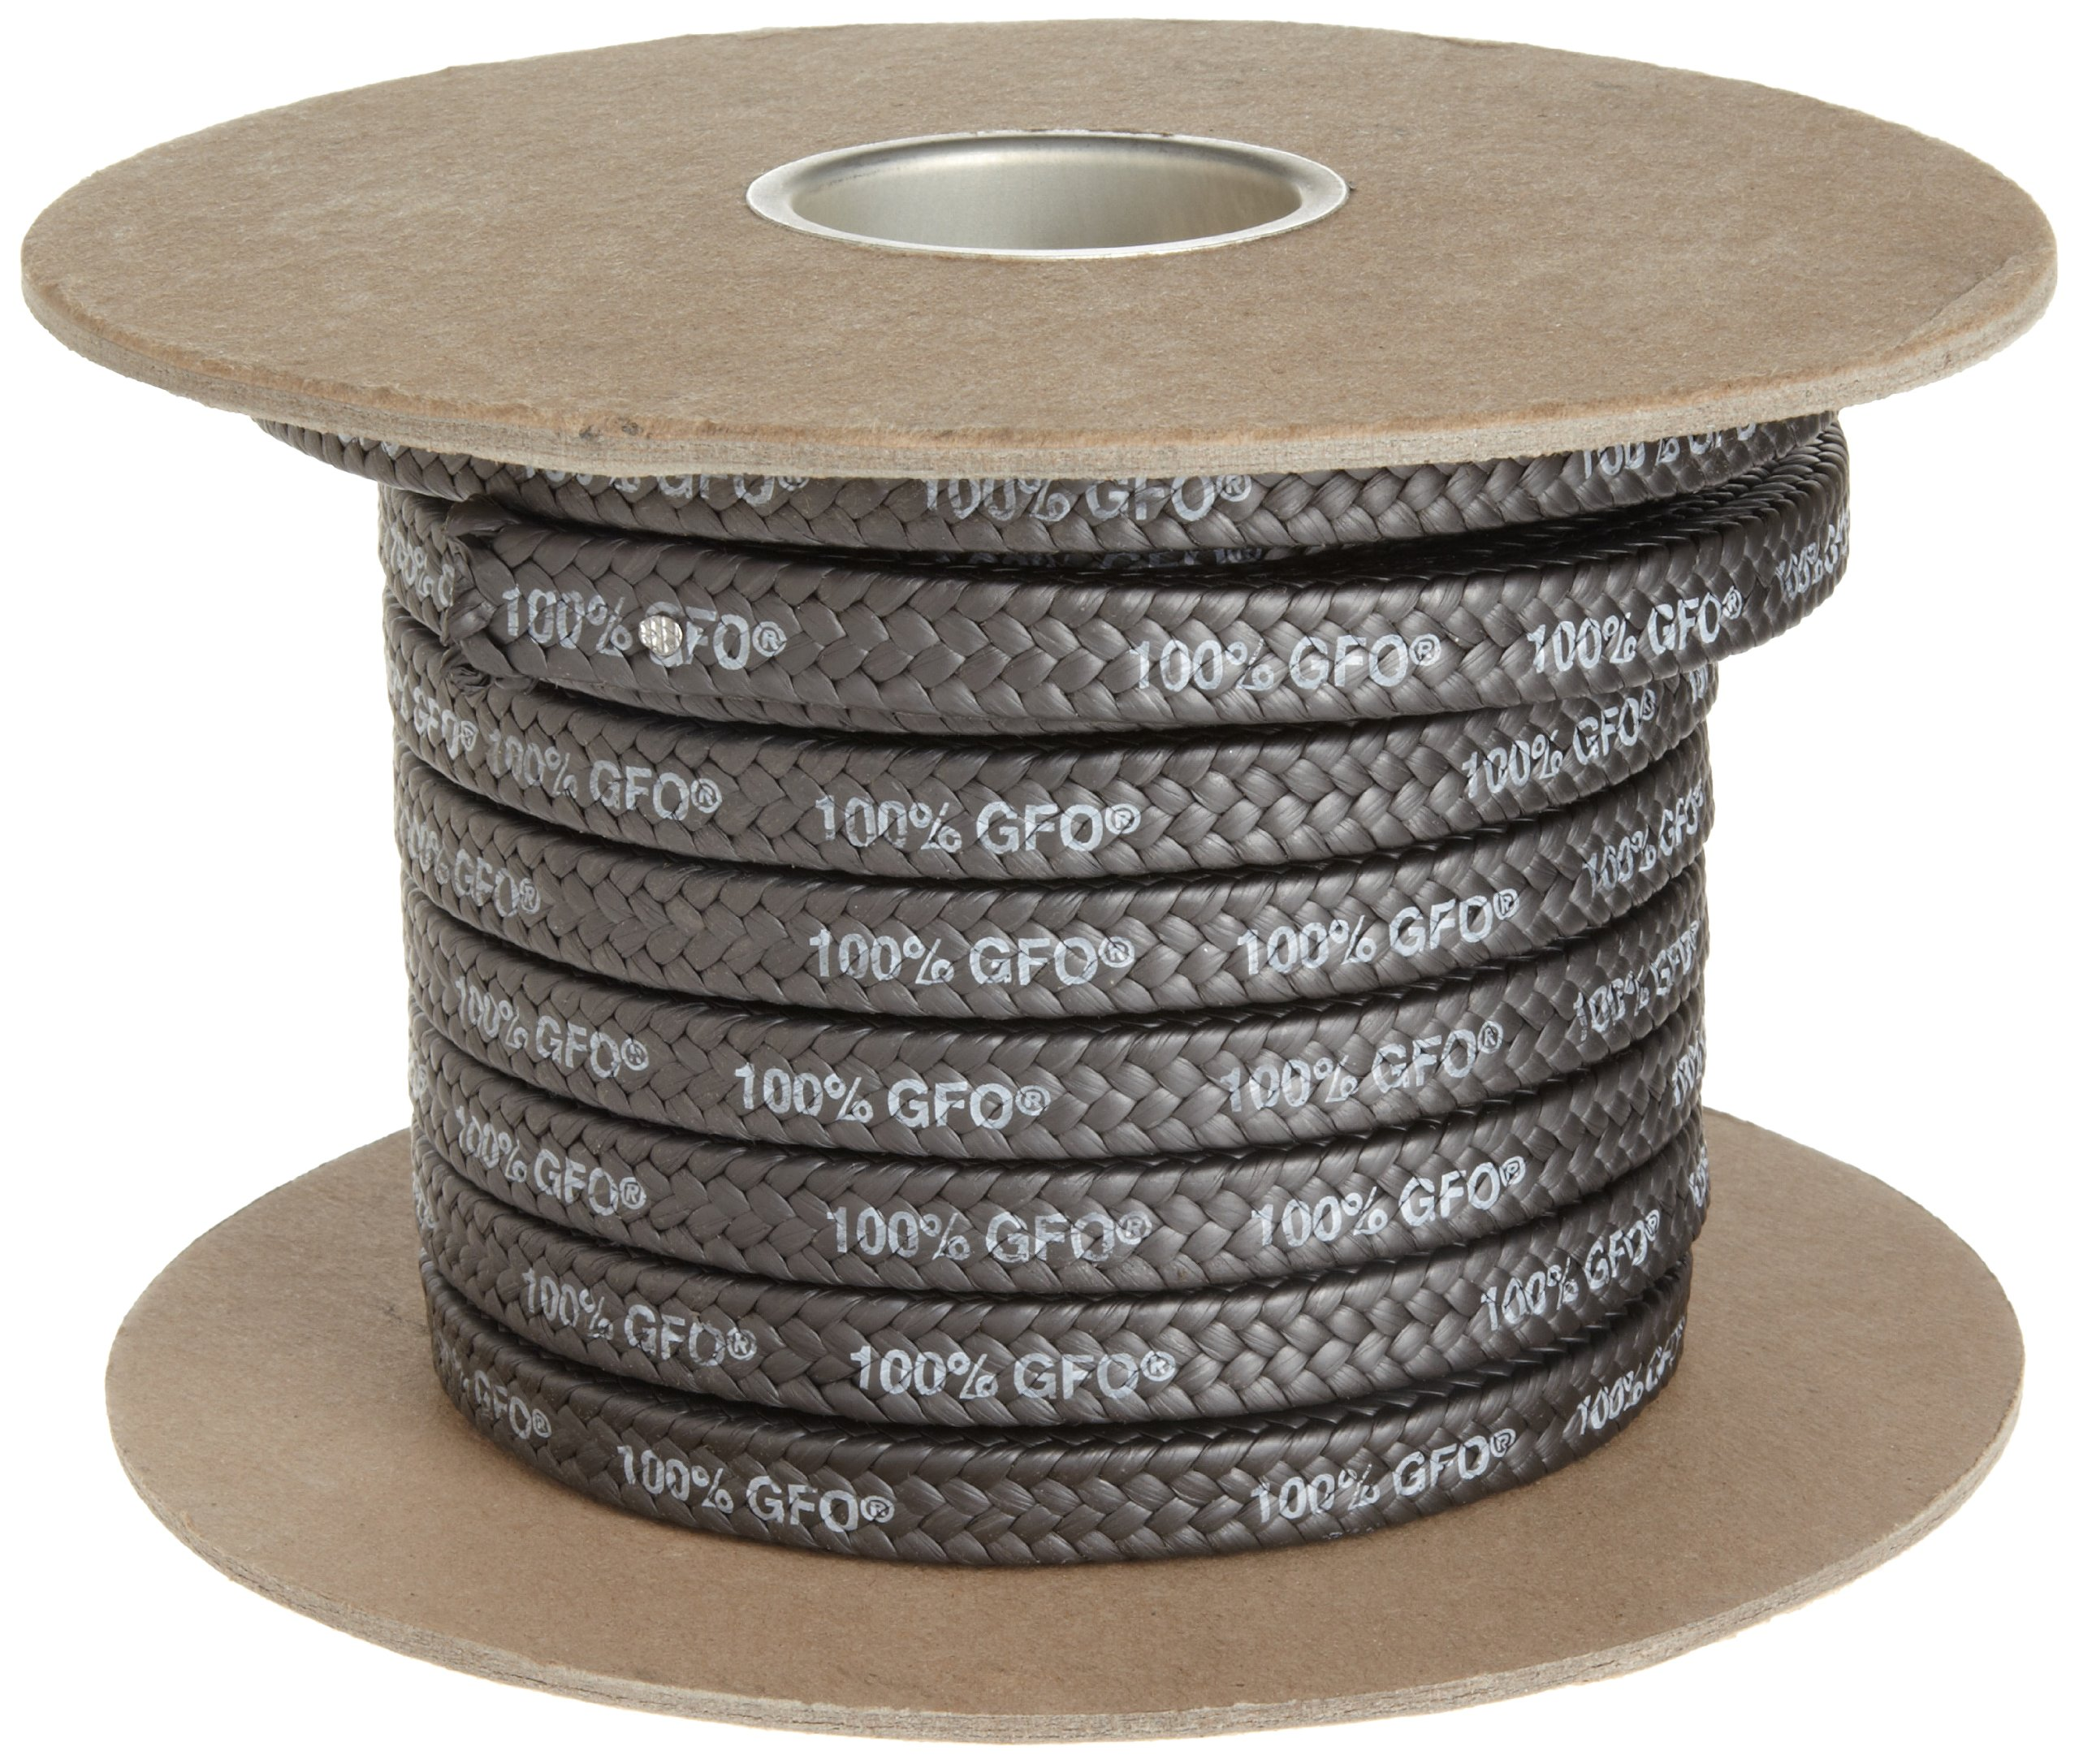 Palmetto 1389 Series 100% GFO Expanded PTFE with Graphite Compression Packing Seal, Dull Black, 1/4'' Square, 5' Length by Palmetto Packings